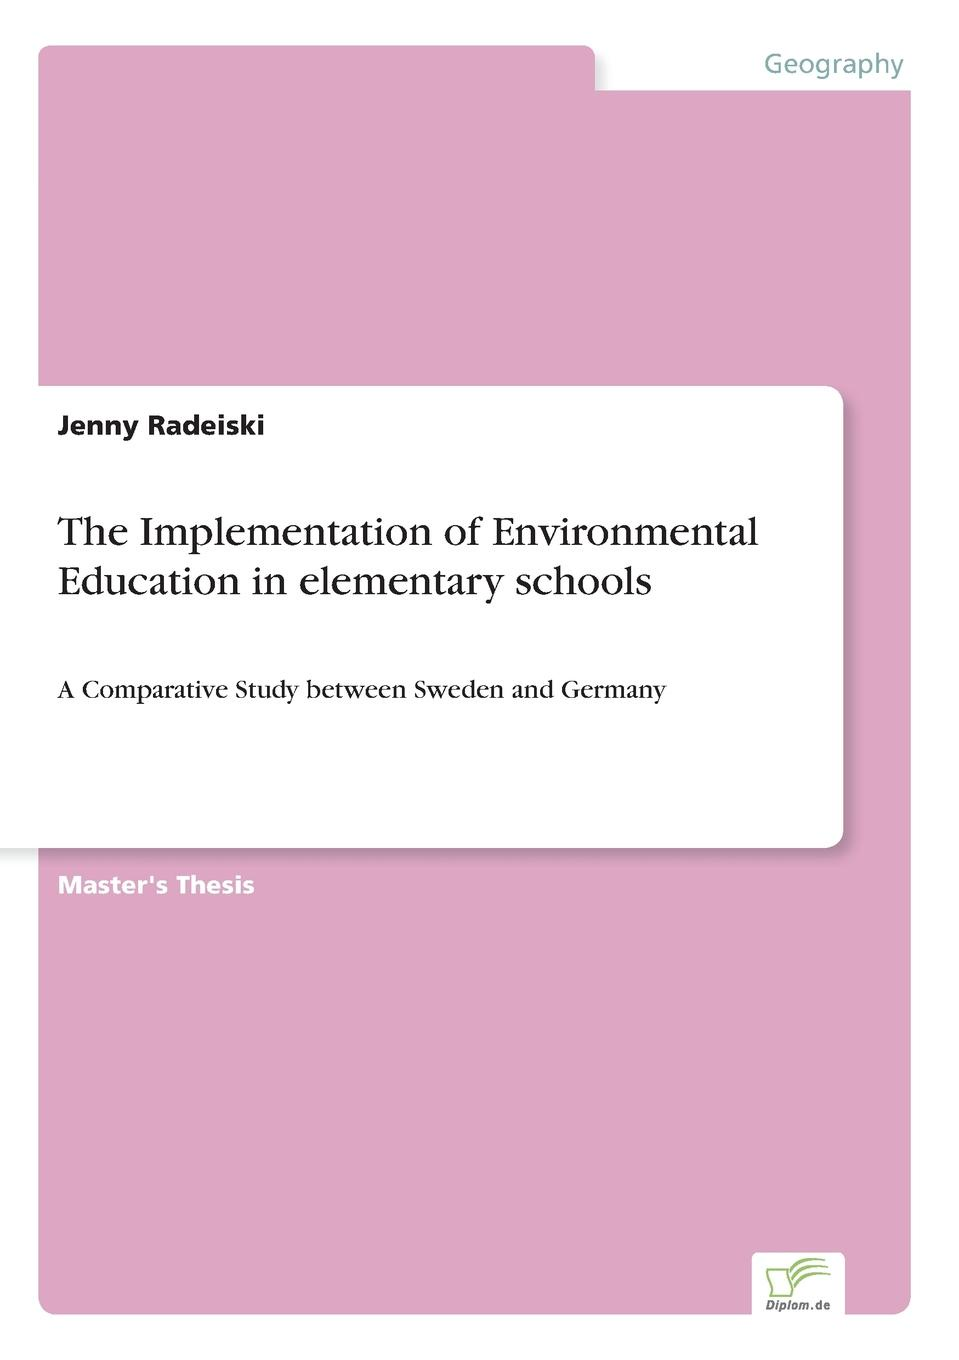 Jenny Radeiski The Implementation of Environmental Education in elementary schools in